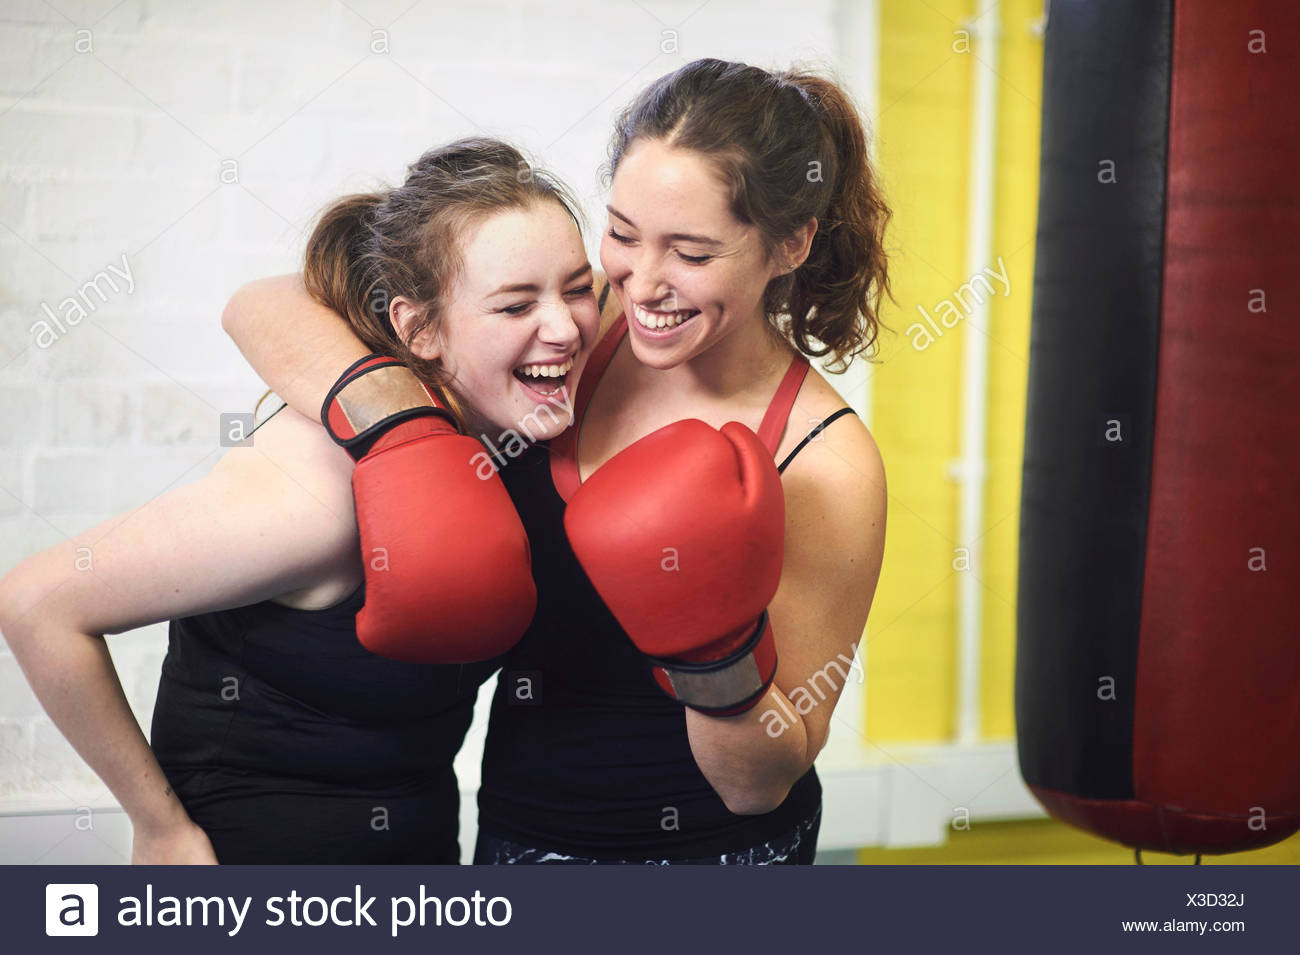 Two female boxing friends pretending to punch in gym - Stock Image